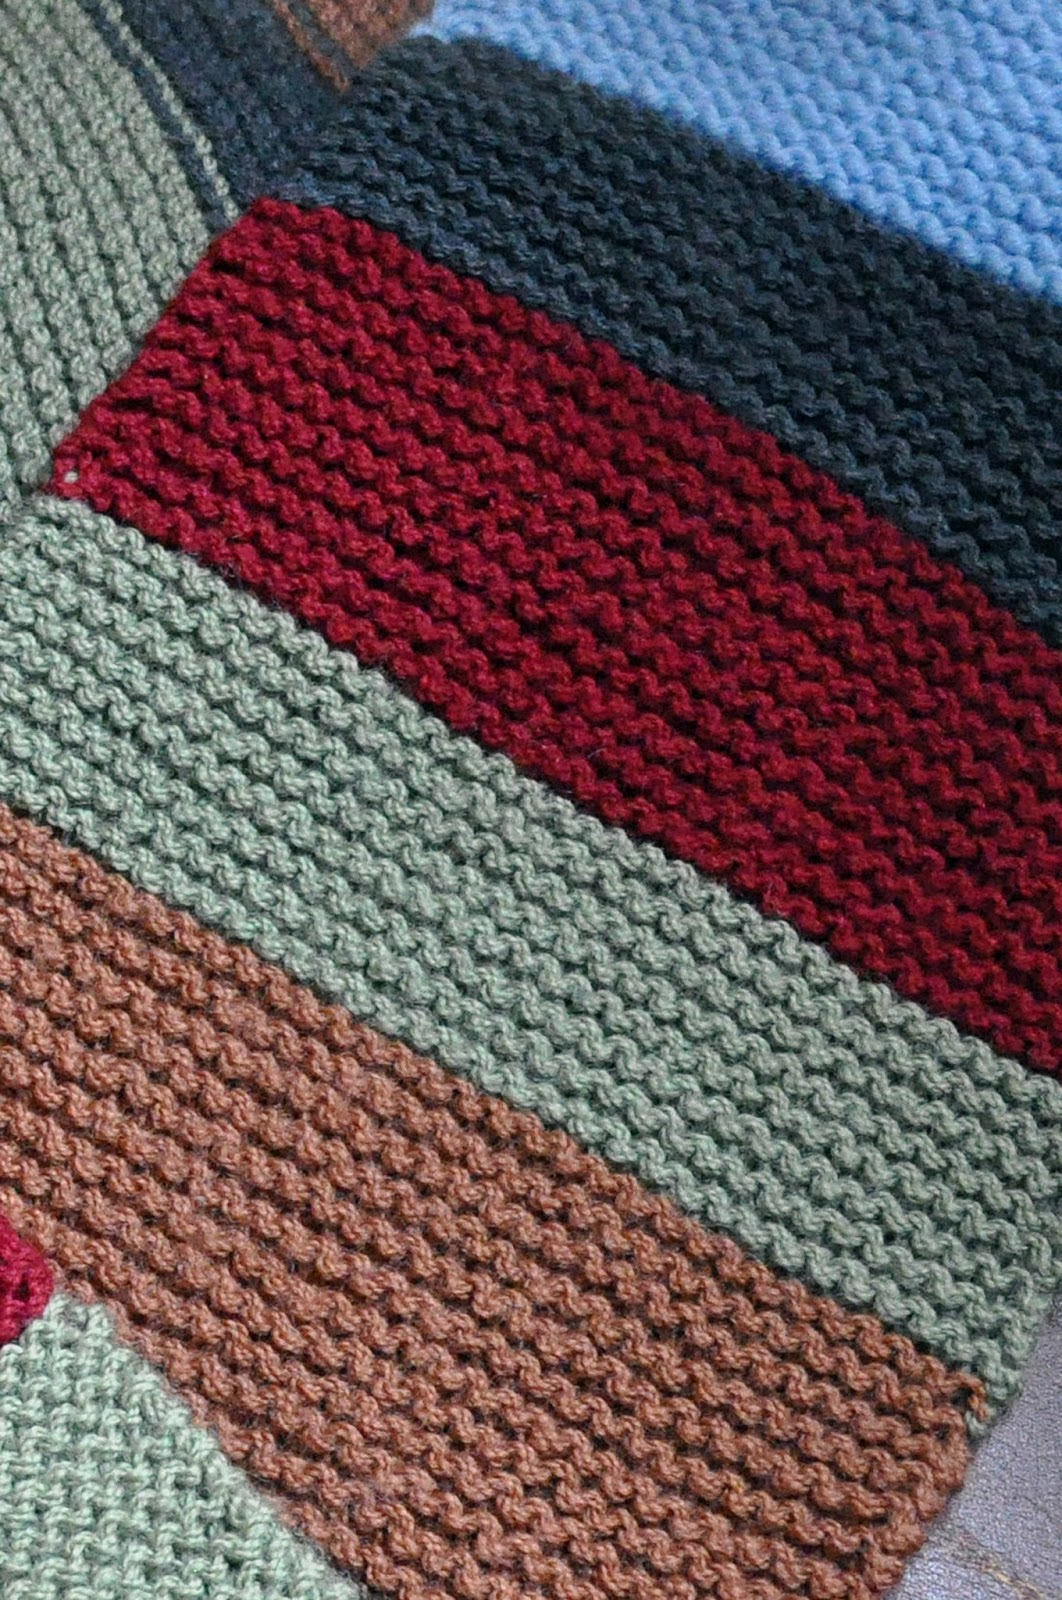 Playing in the Attic: The Garter Stitch Scarf